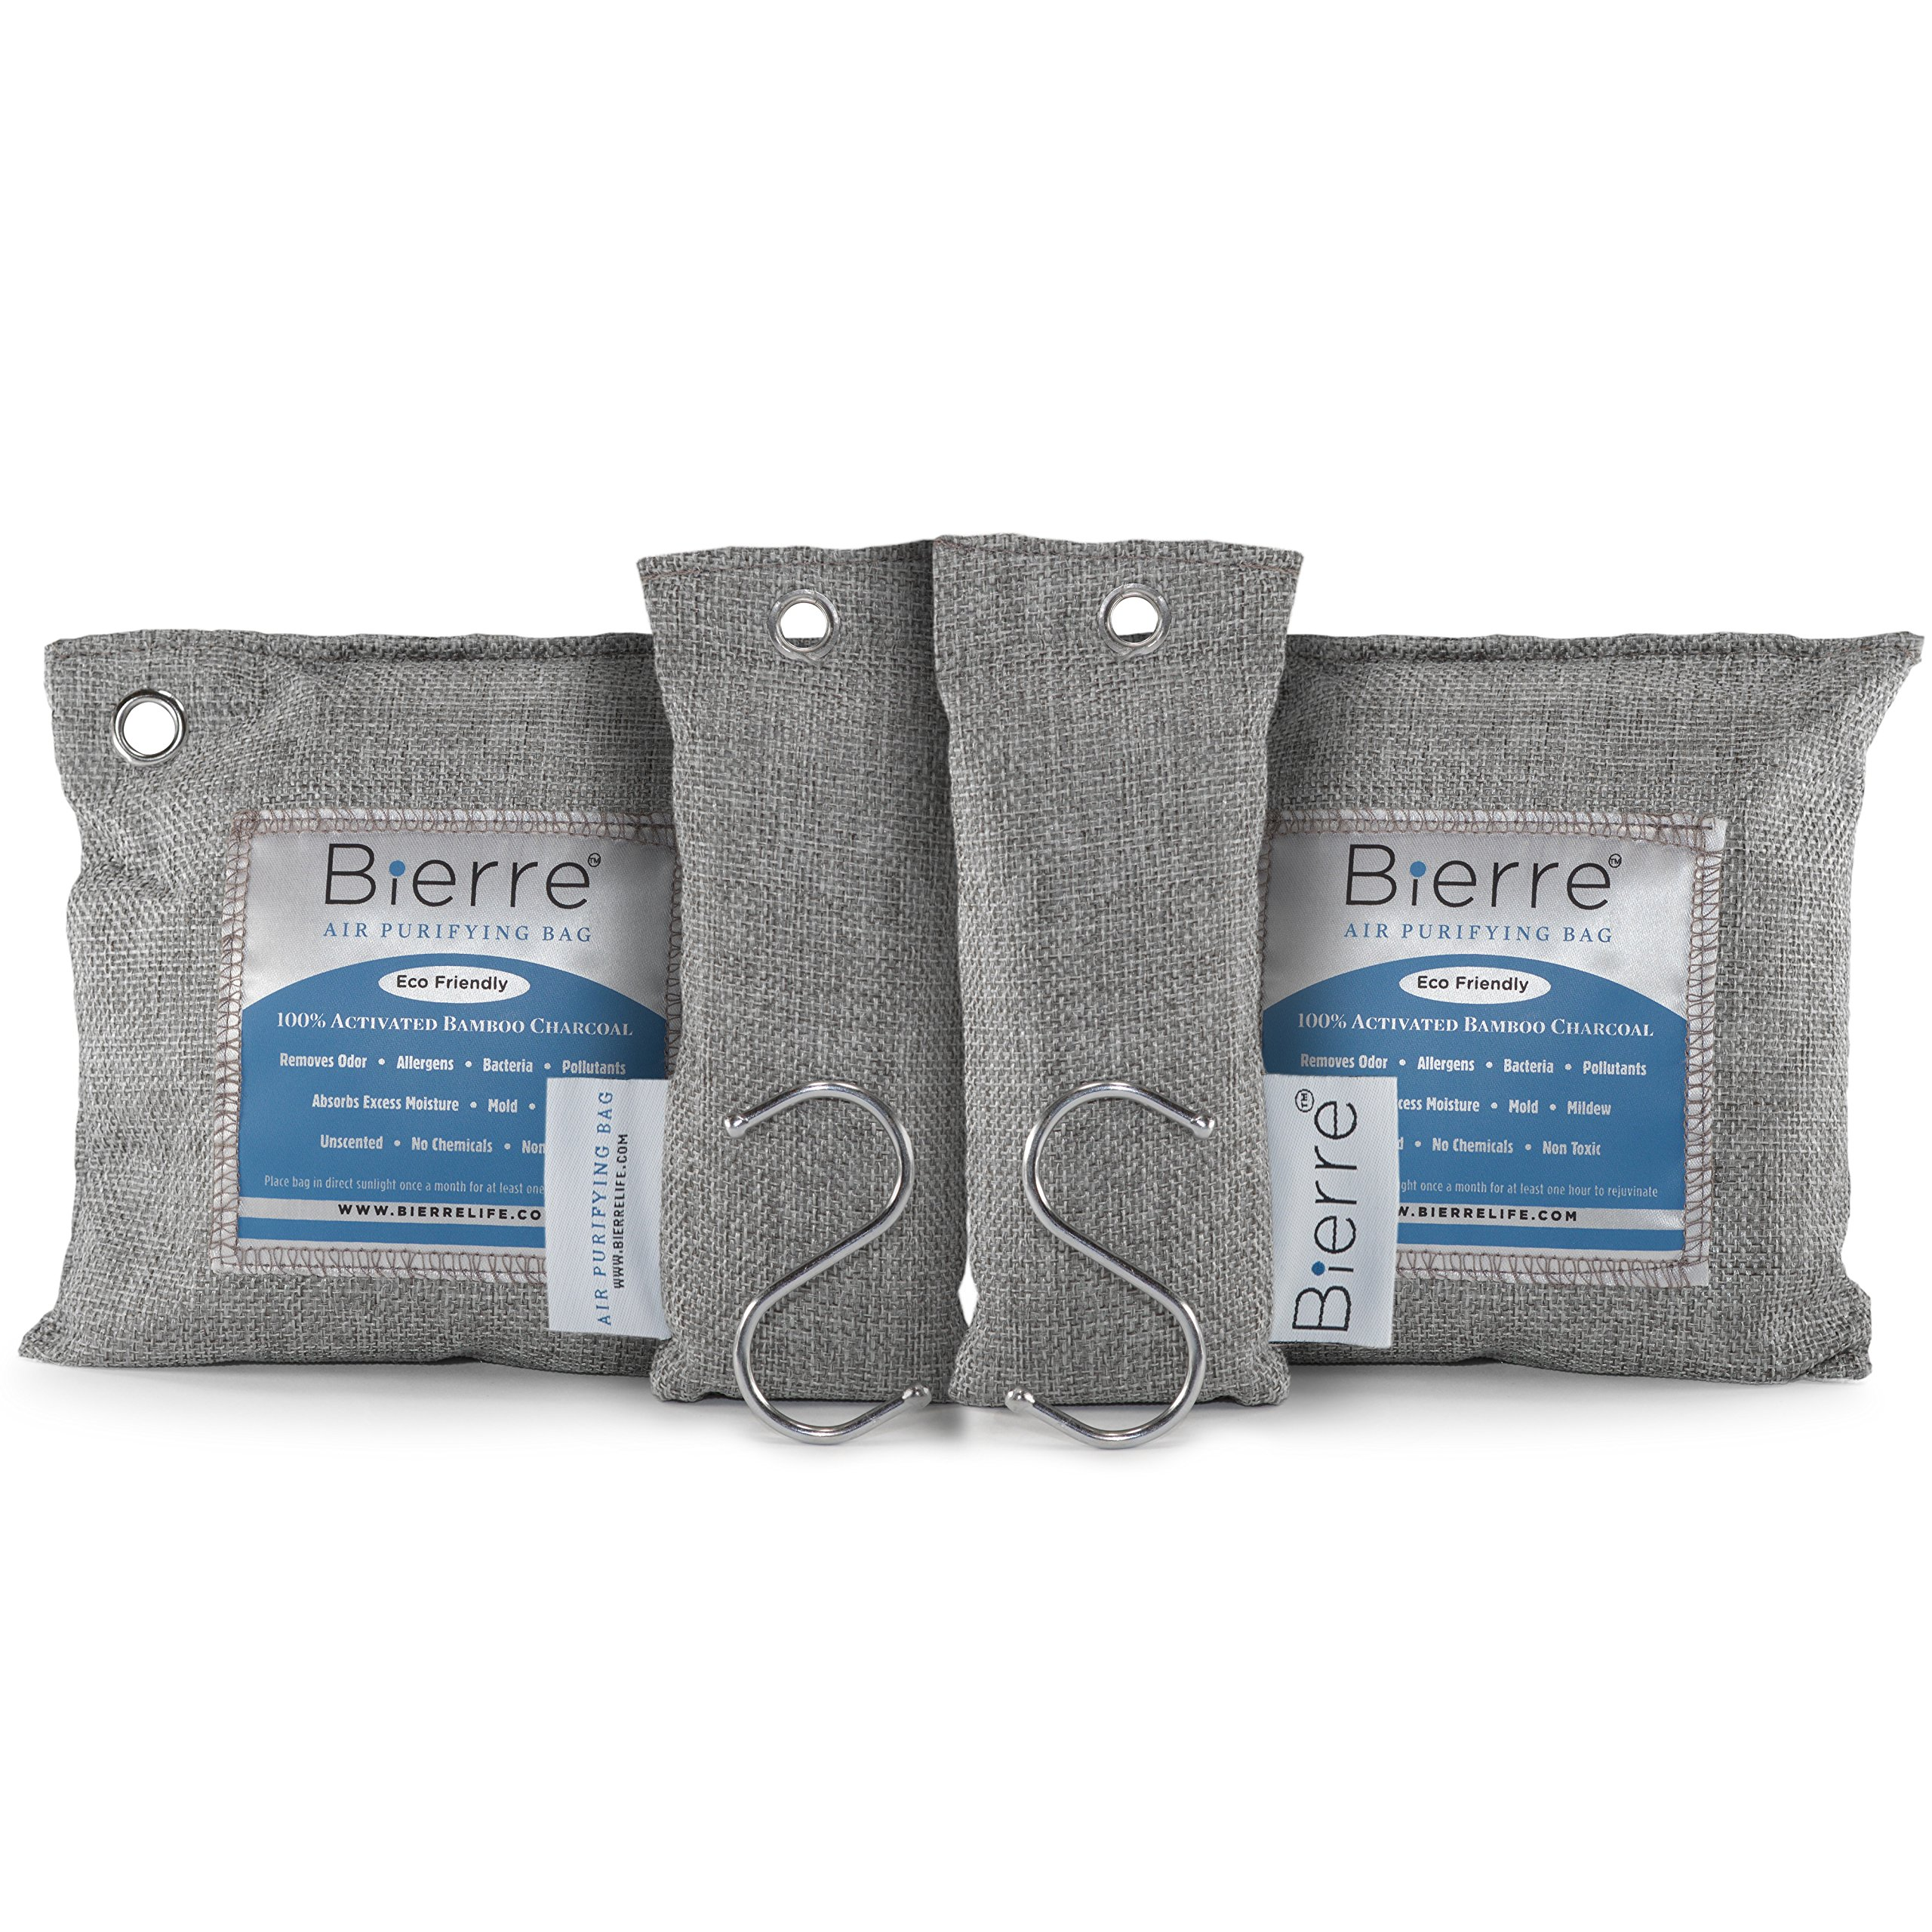 Bierre 4 Pack, 100% Bamboo Activated Charcoal Air Purifying Bags - Eco Friendly Natural Odor Remover - Unscented, Non Chemical - Removes Bacteria, Allergens, Pollutants, Absorbs Moisture, Mold, Mildew by Bierre (Image #1)